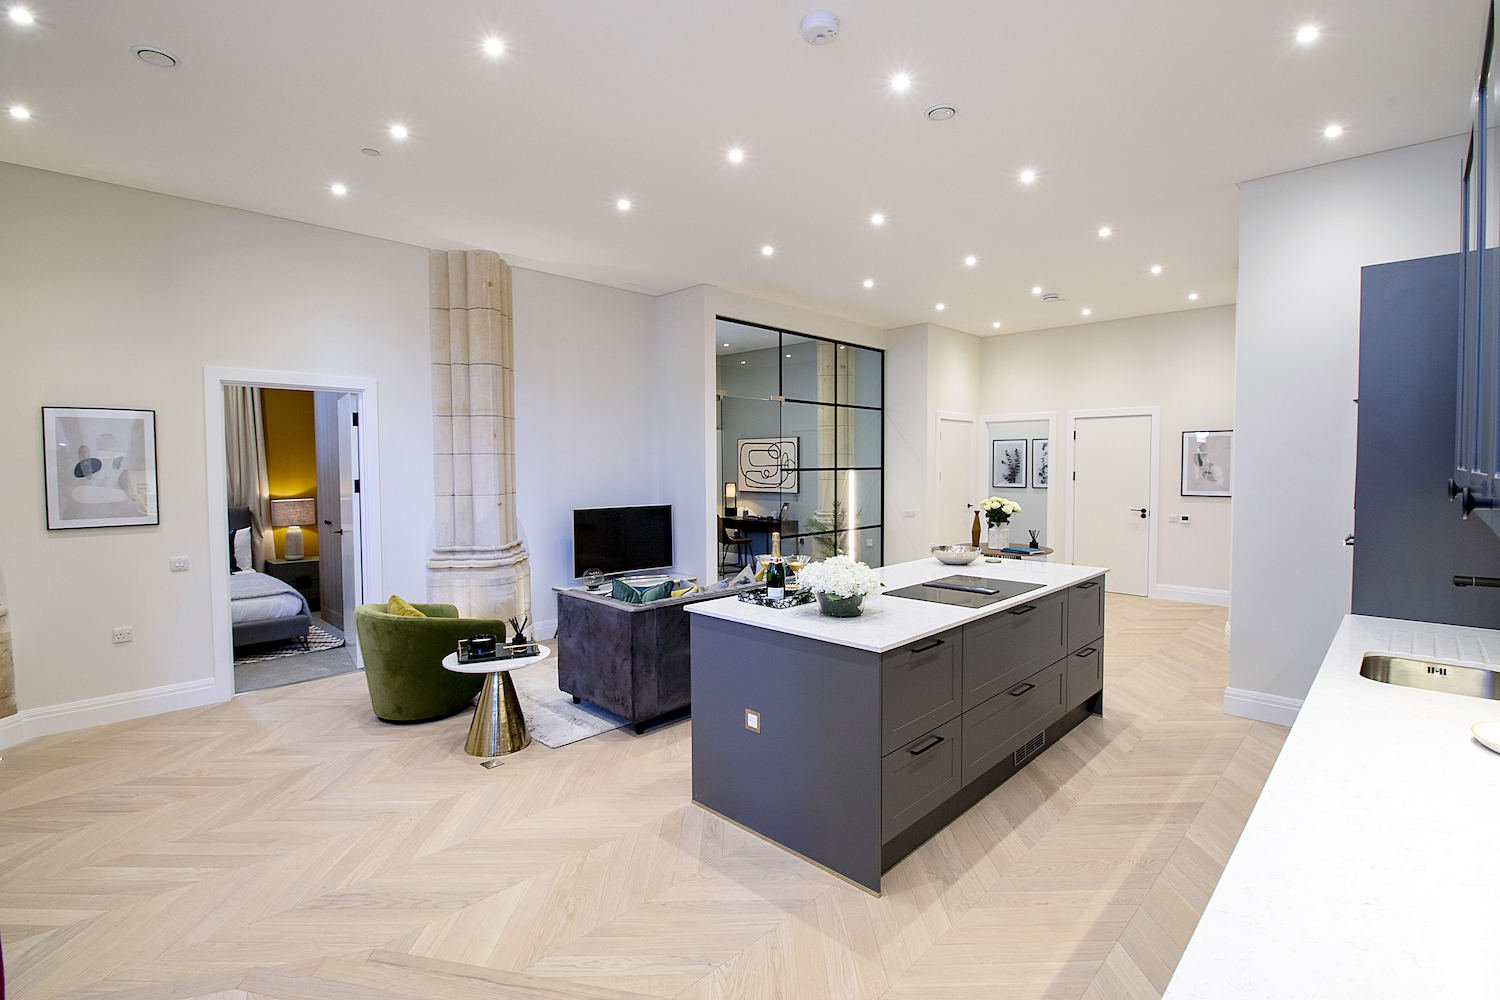 2 bed house for sale in North London